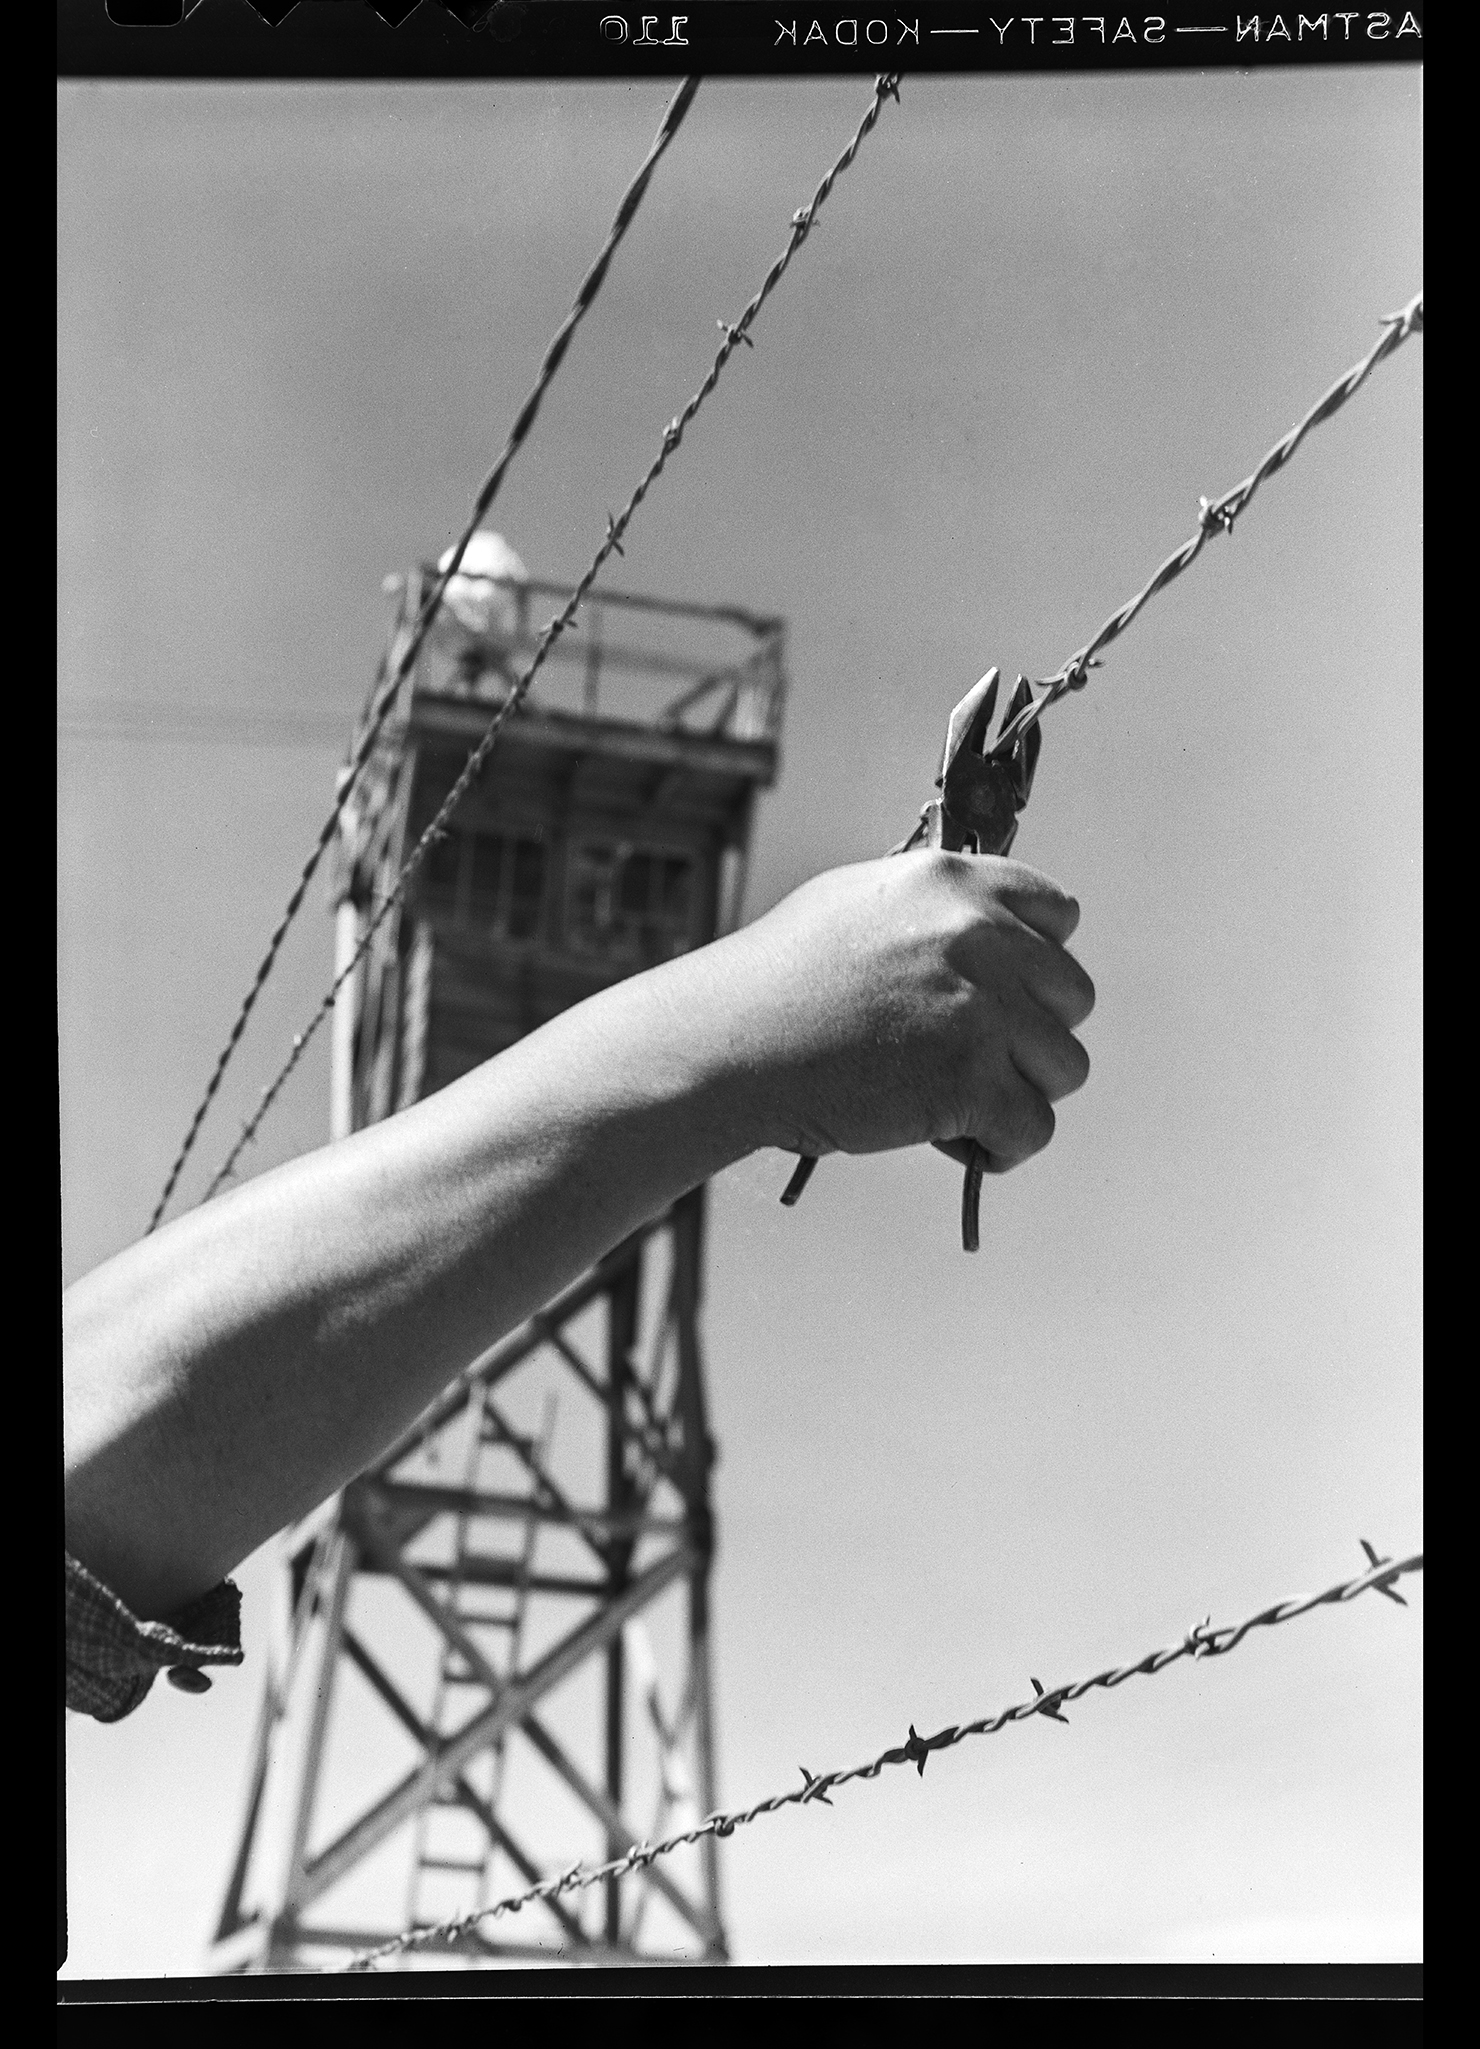 Toyo Miyatake, Hand and Barbed Wire, ca. 1944. Courtesy Toyo Miyatake Studio.